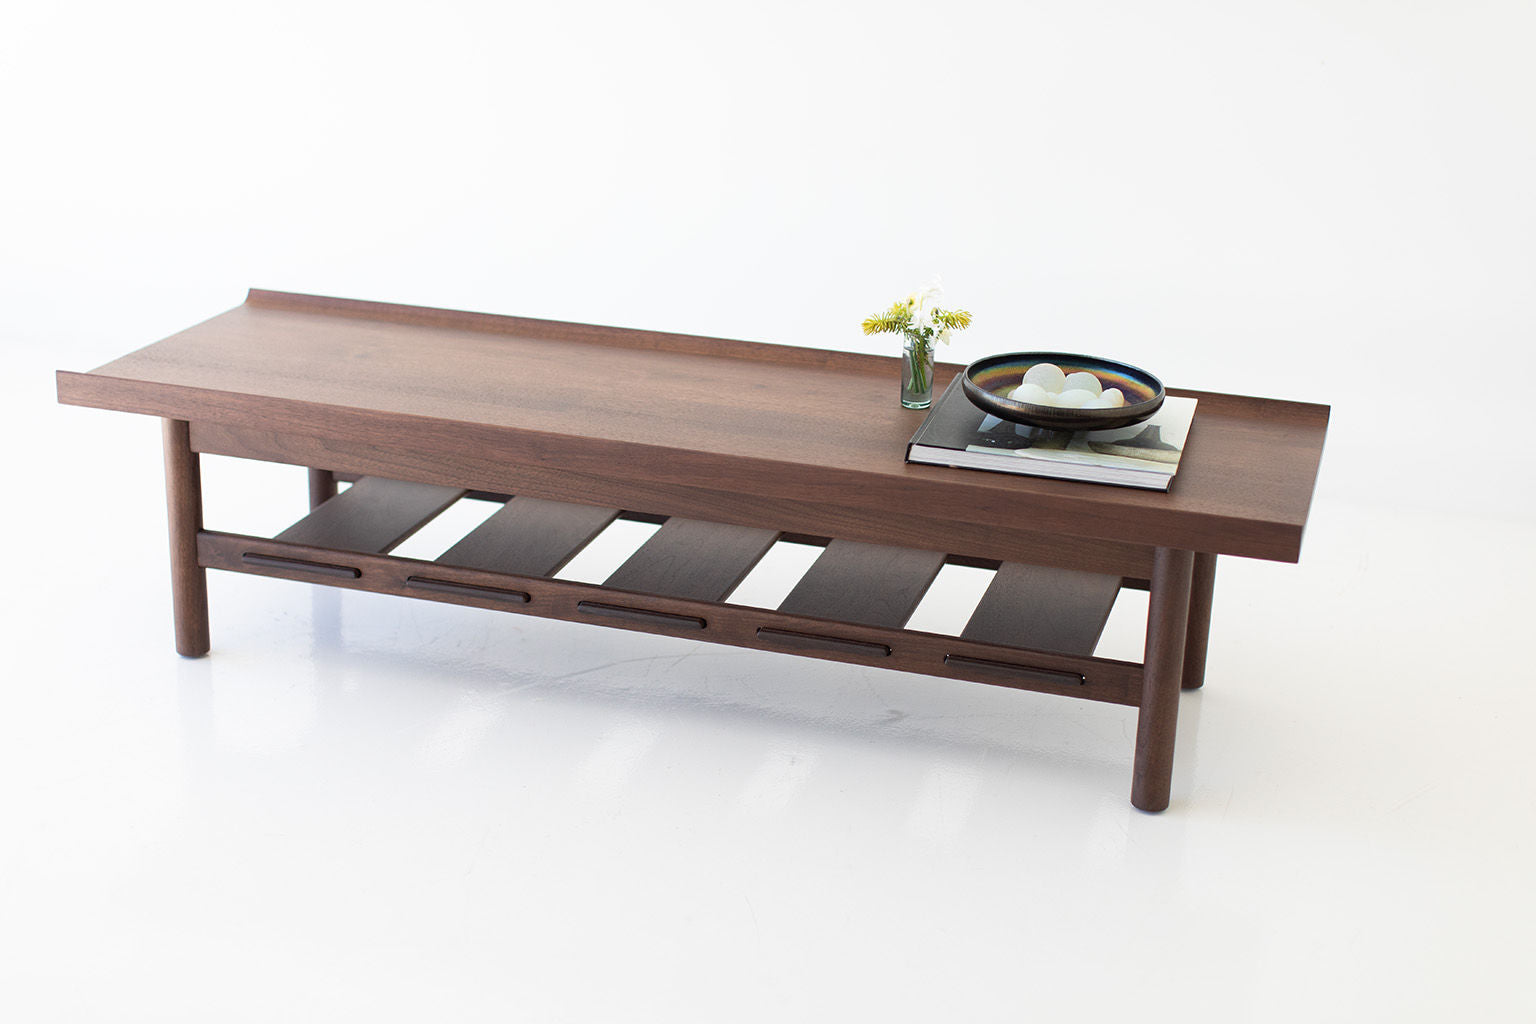 Lawrence Peabody Modern Coffee Table - 2009 - Craft Associates Furniture